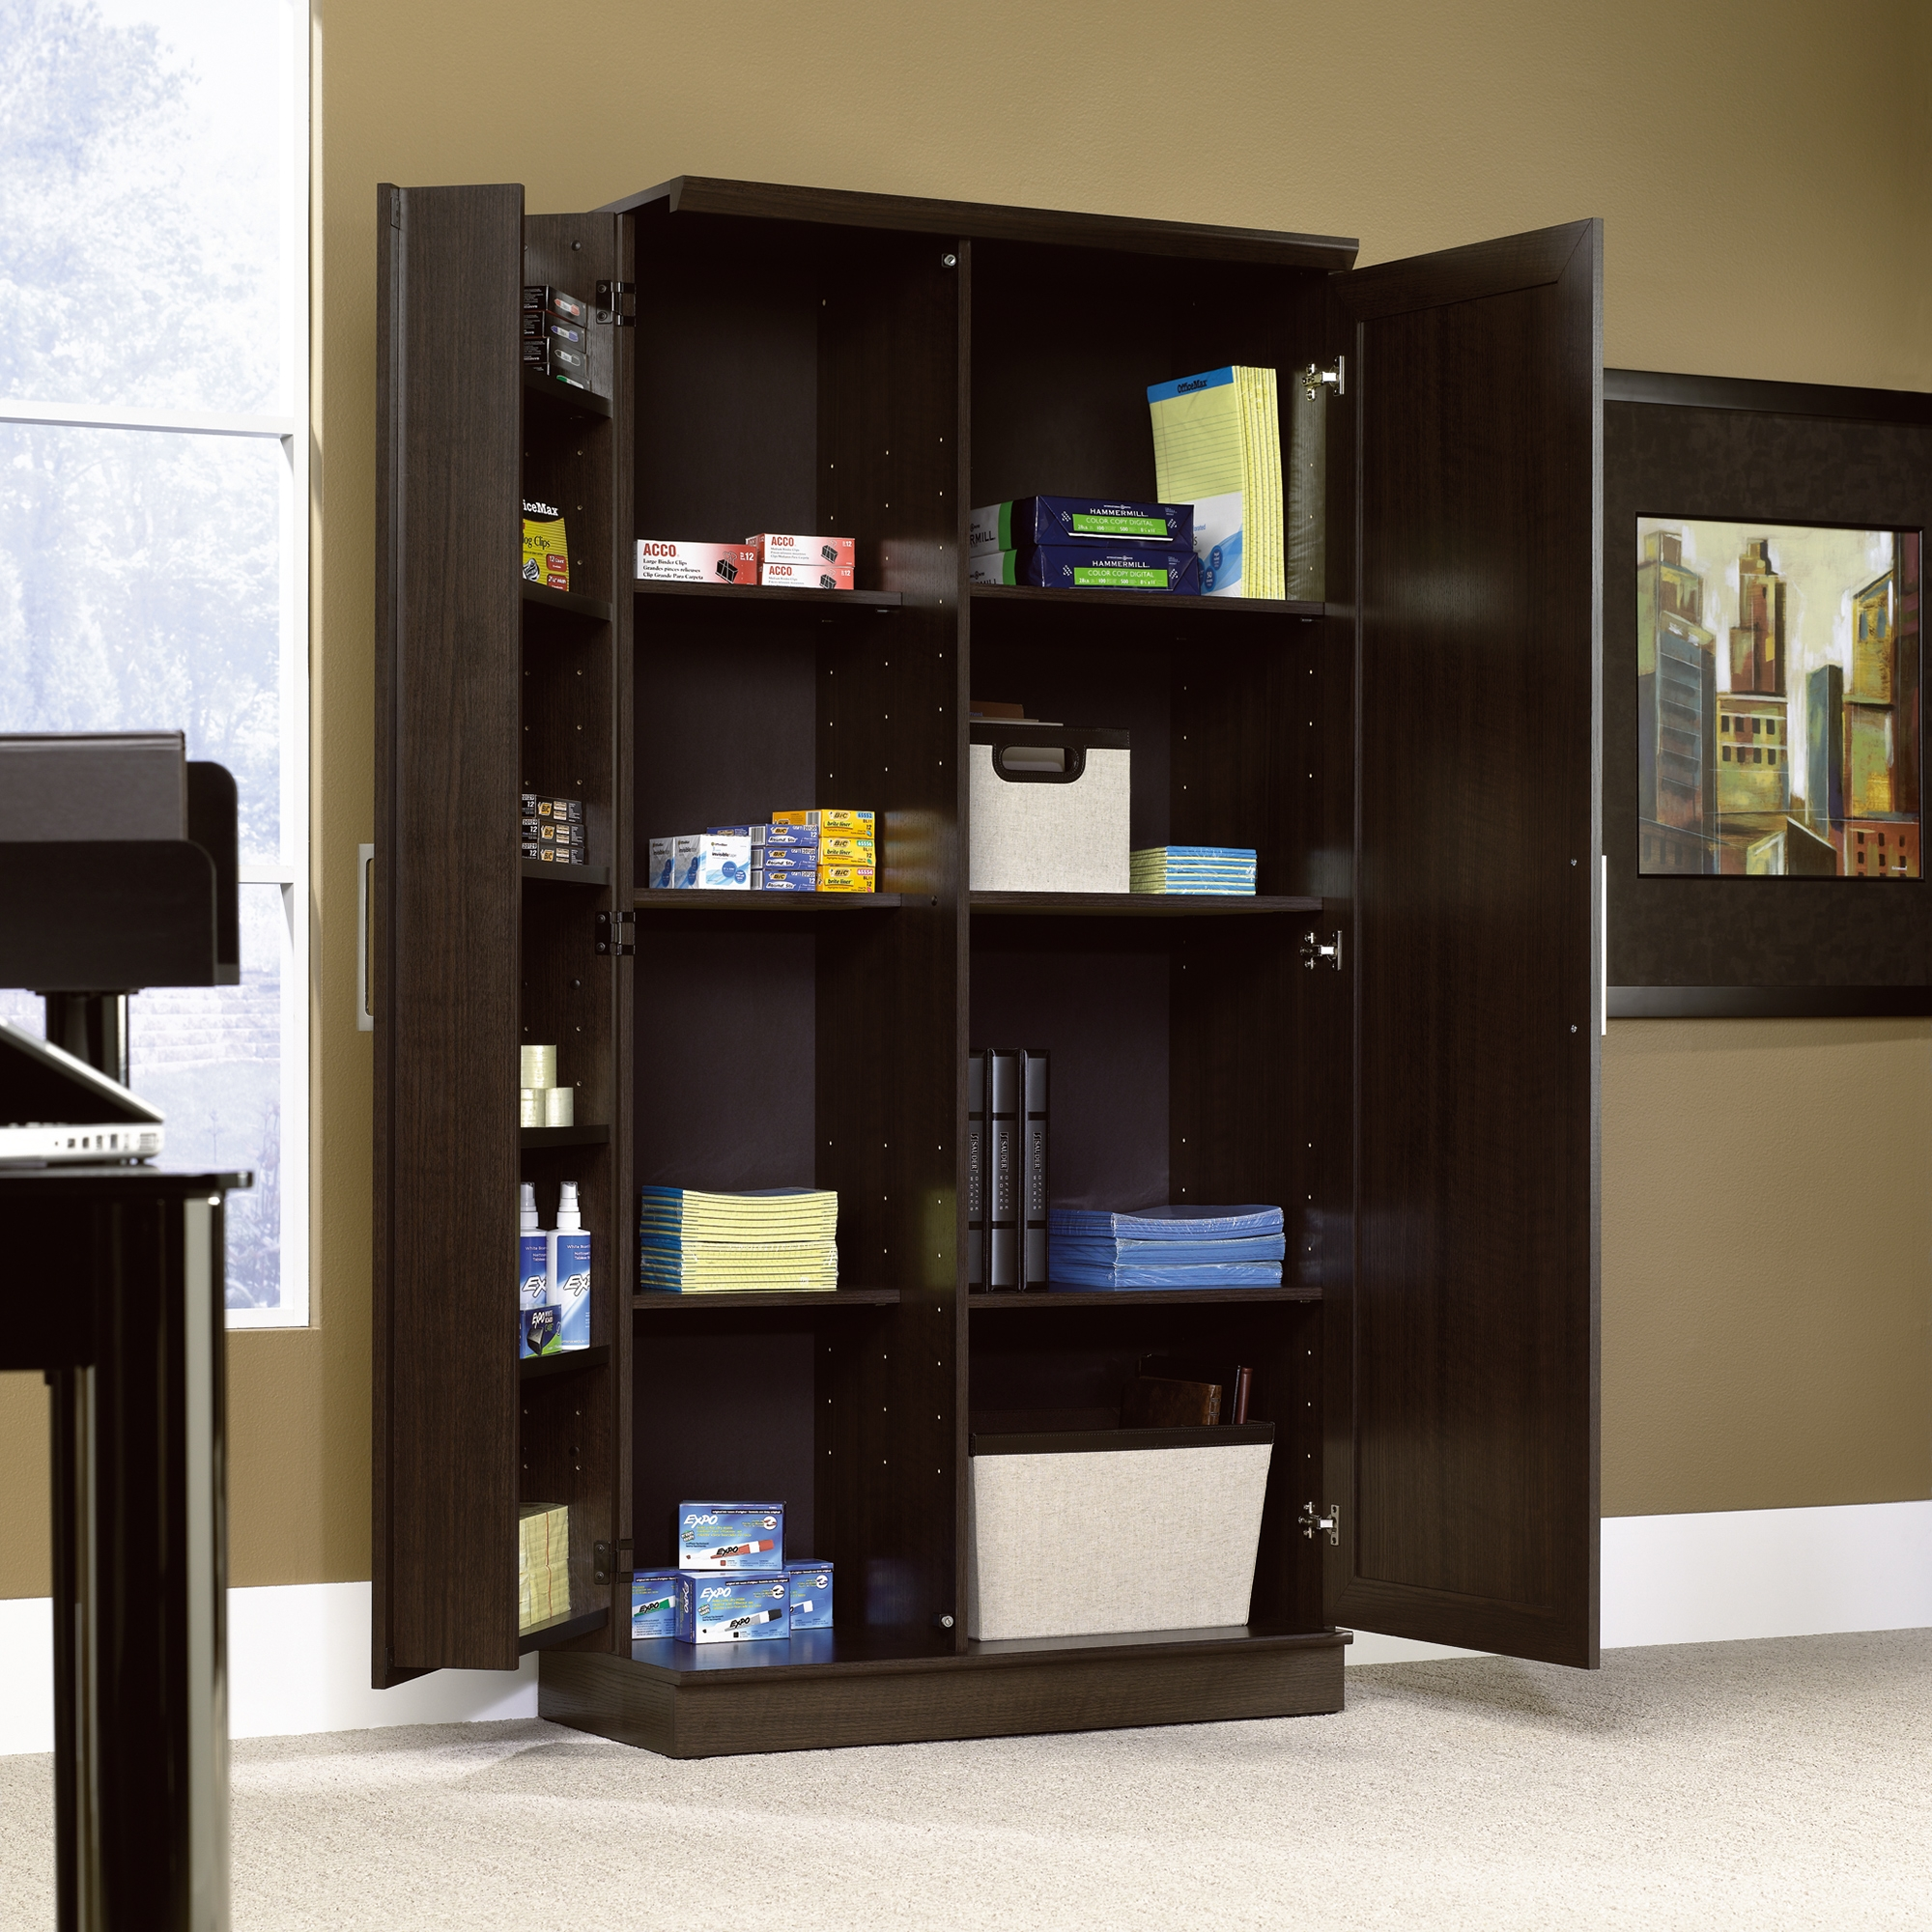 Large Double Door Storage CabinetLarge Double Door Storage Cabinet